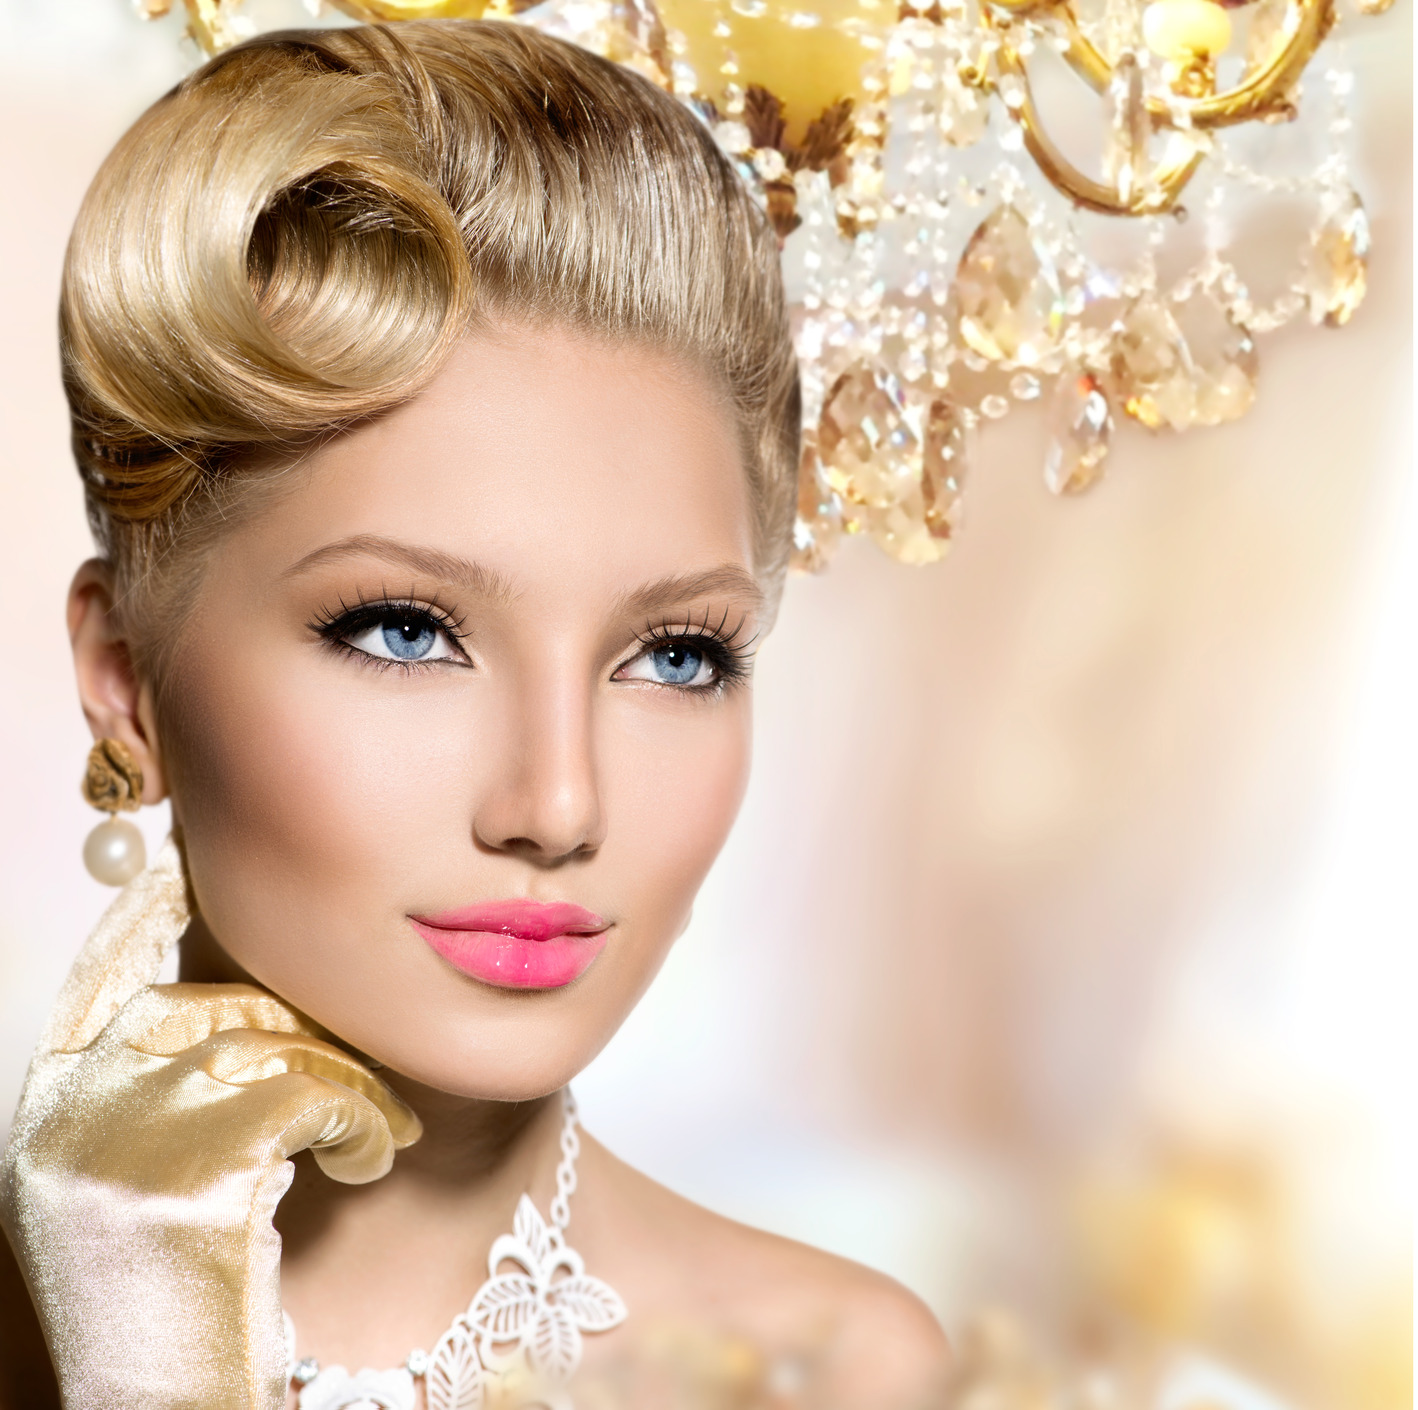 knapsels-vintage-styled-girl-with-perfect-make-up-and-hairstyl-m